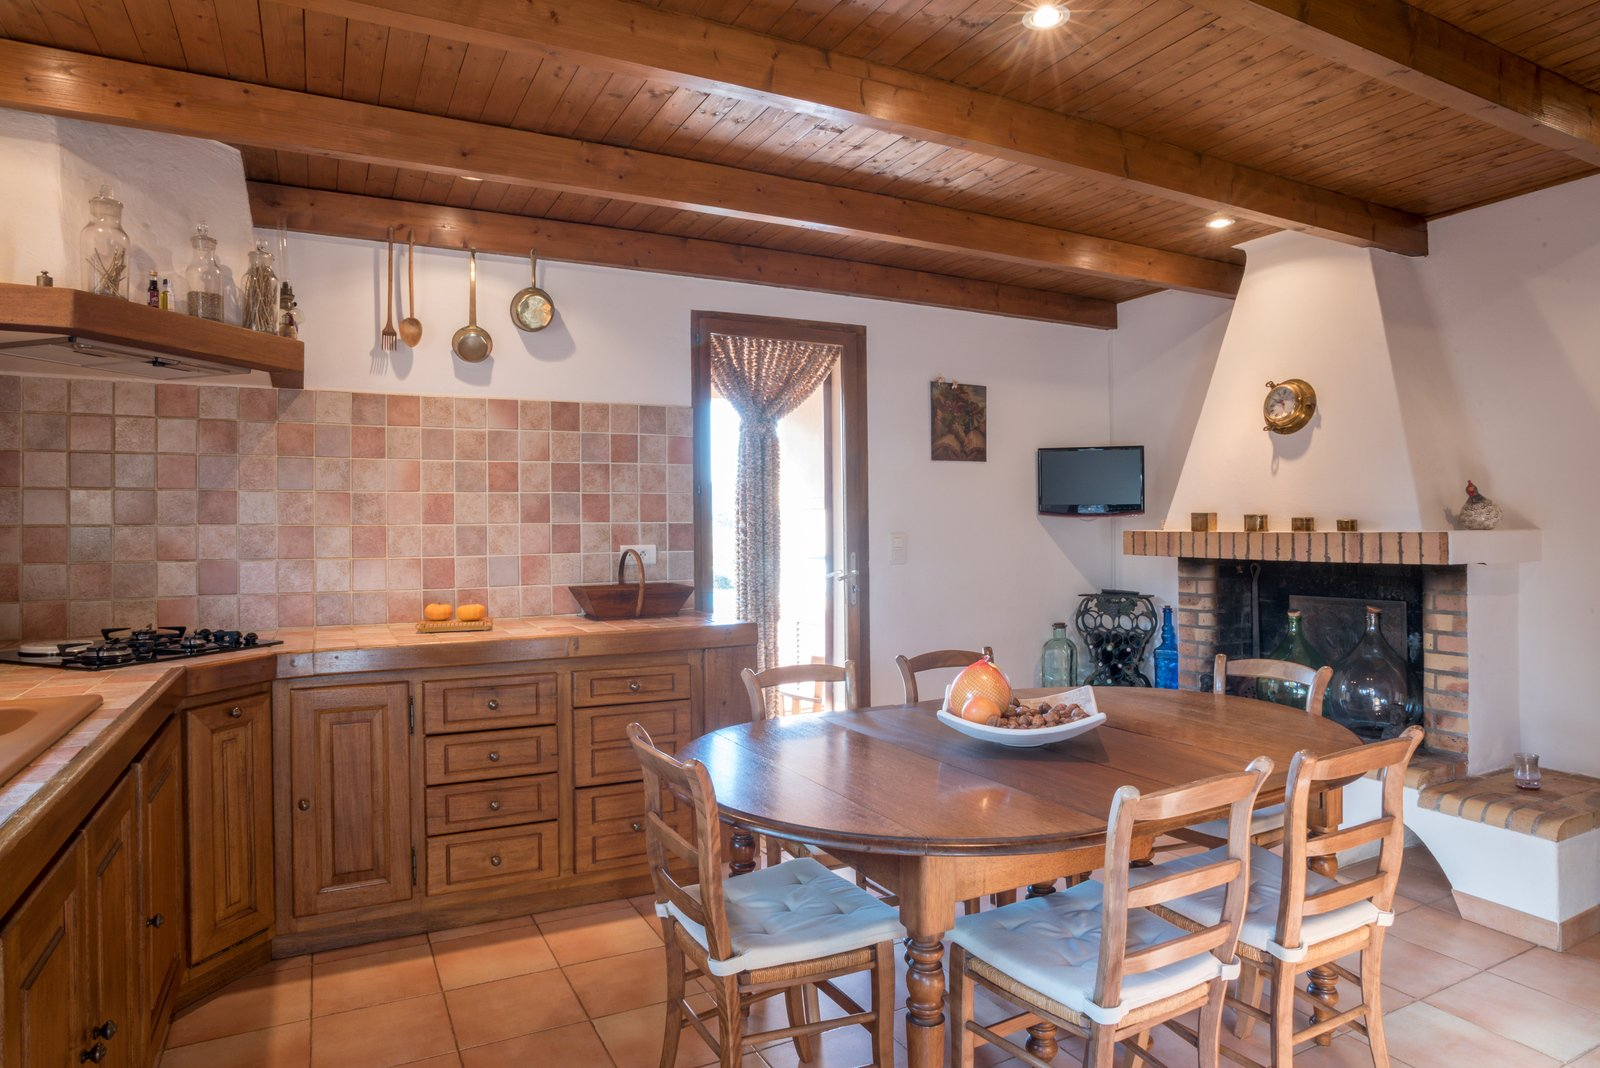 Corsica porto vecchio villa for sale route de palombaggia for Amenagement cuisine avec cheminee